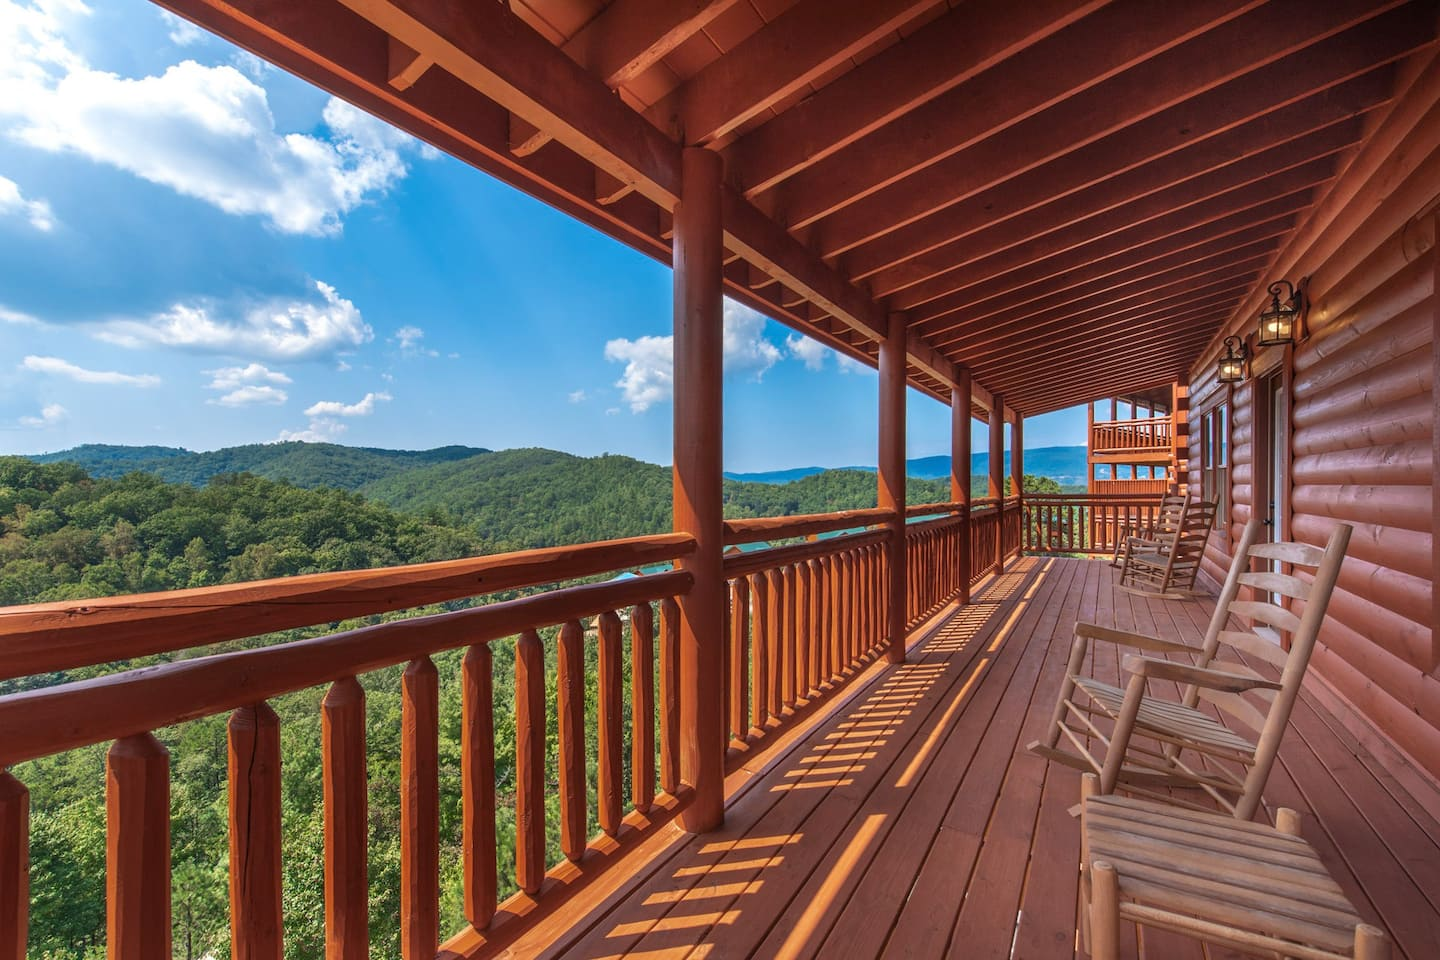 best airbnb in gatlinburg for bachelor party